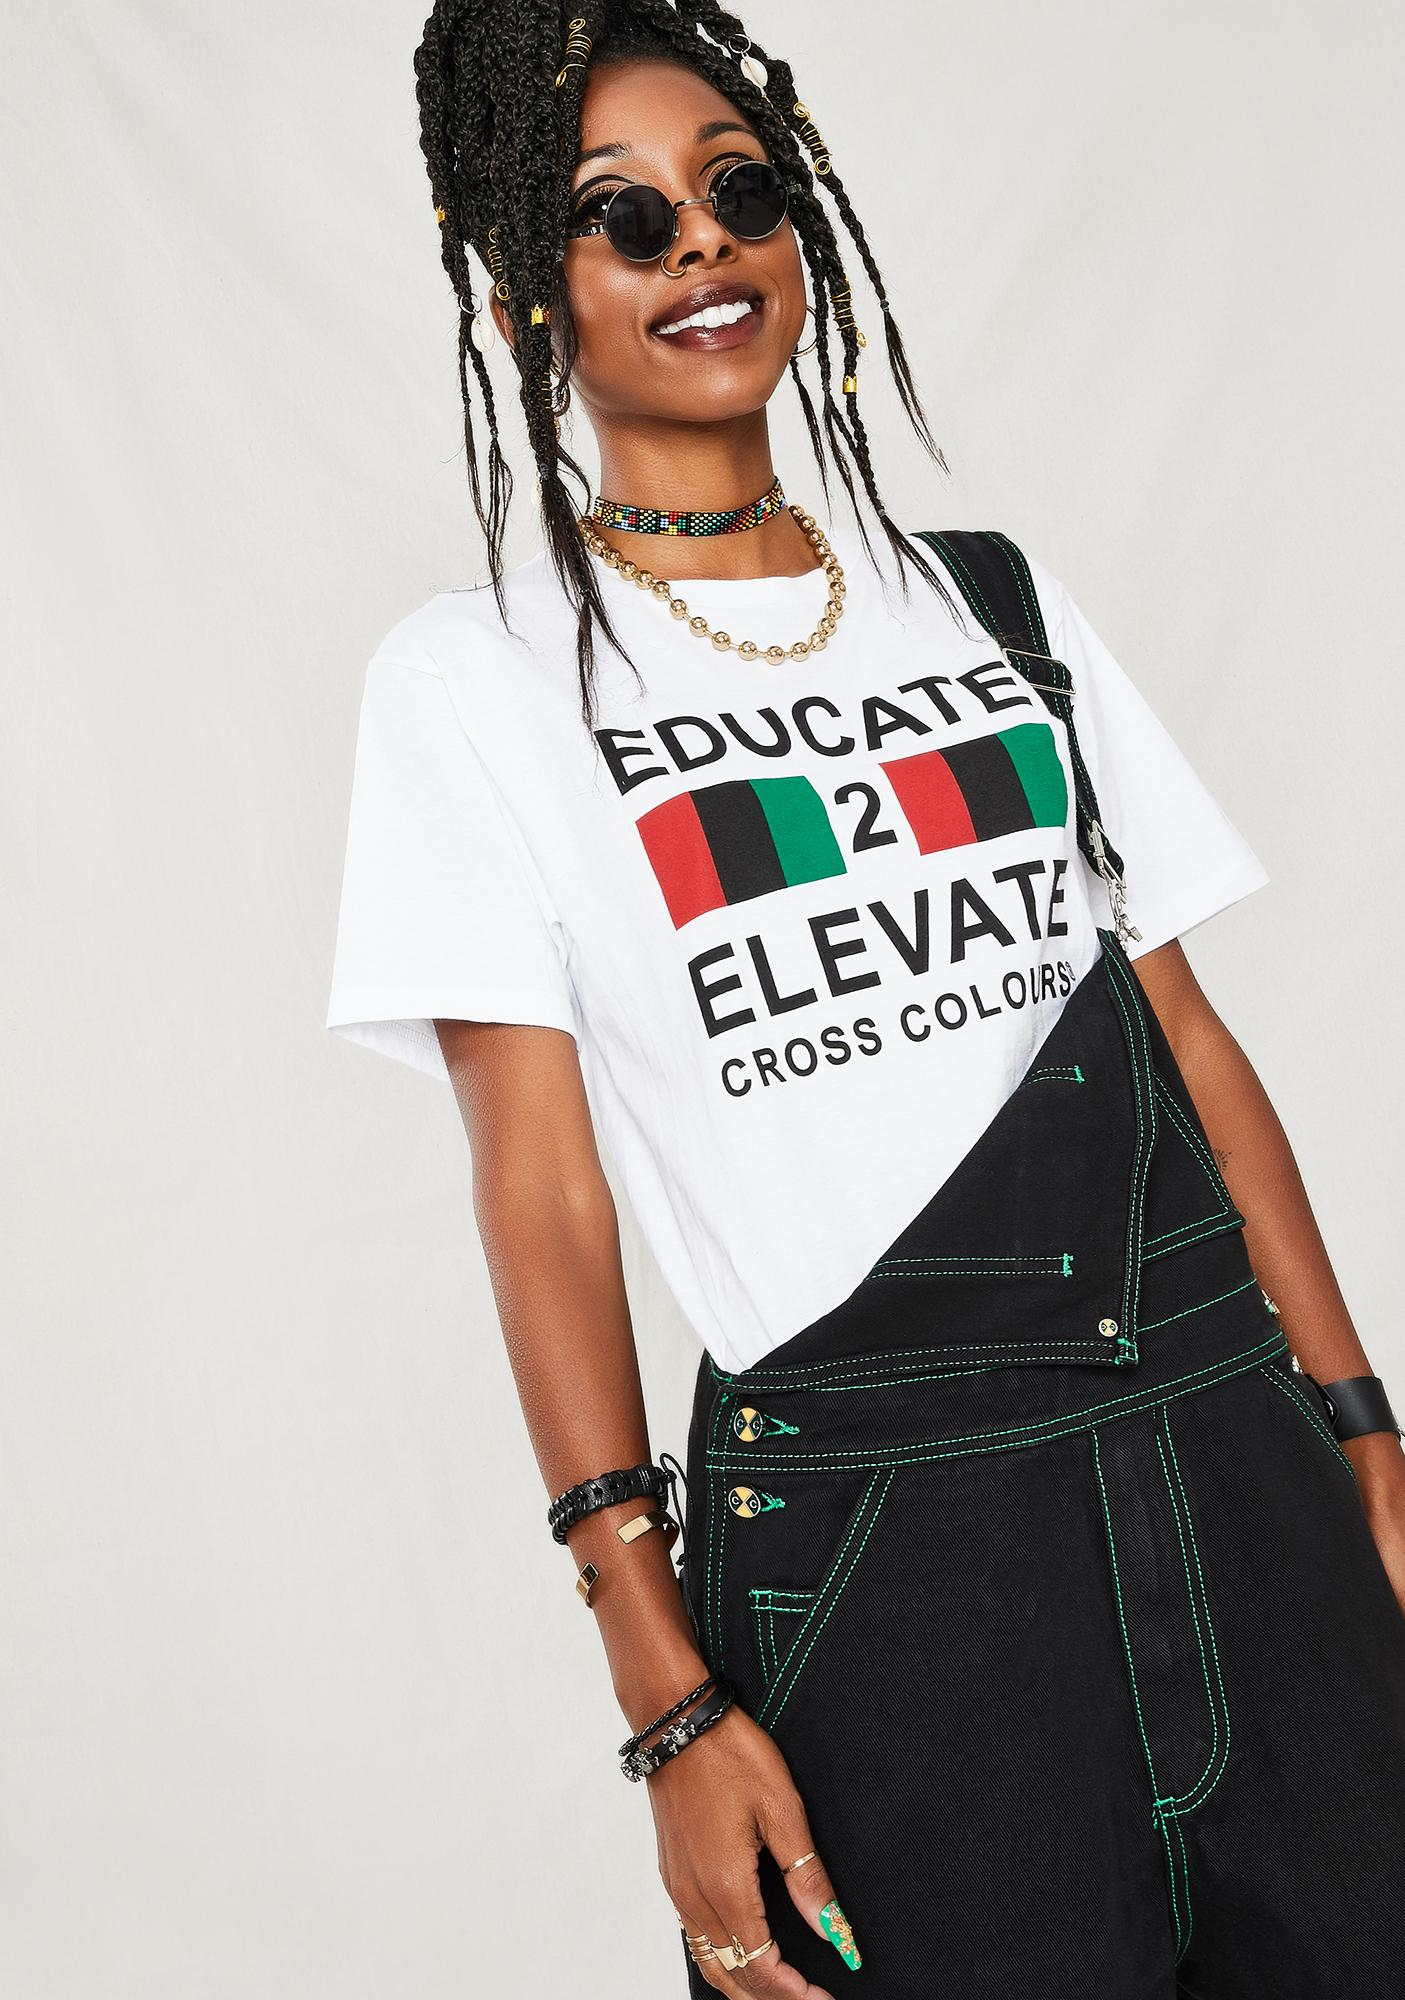 Cross Colours Educate to Elevate T-Shirt